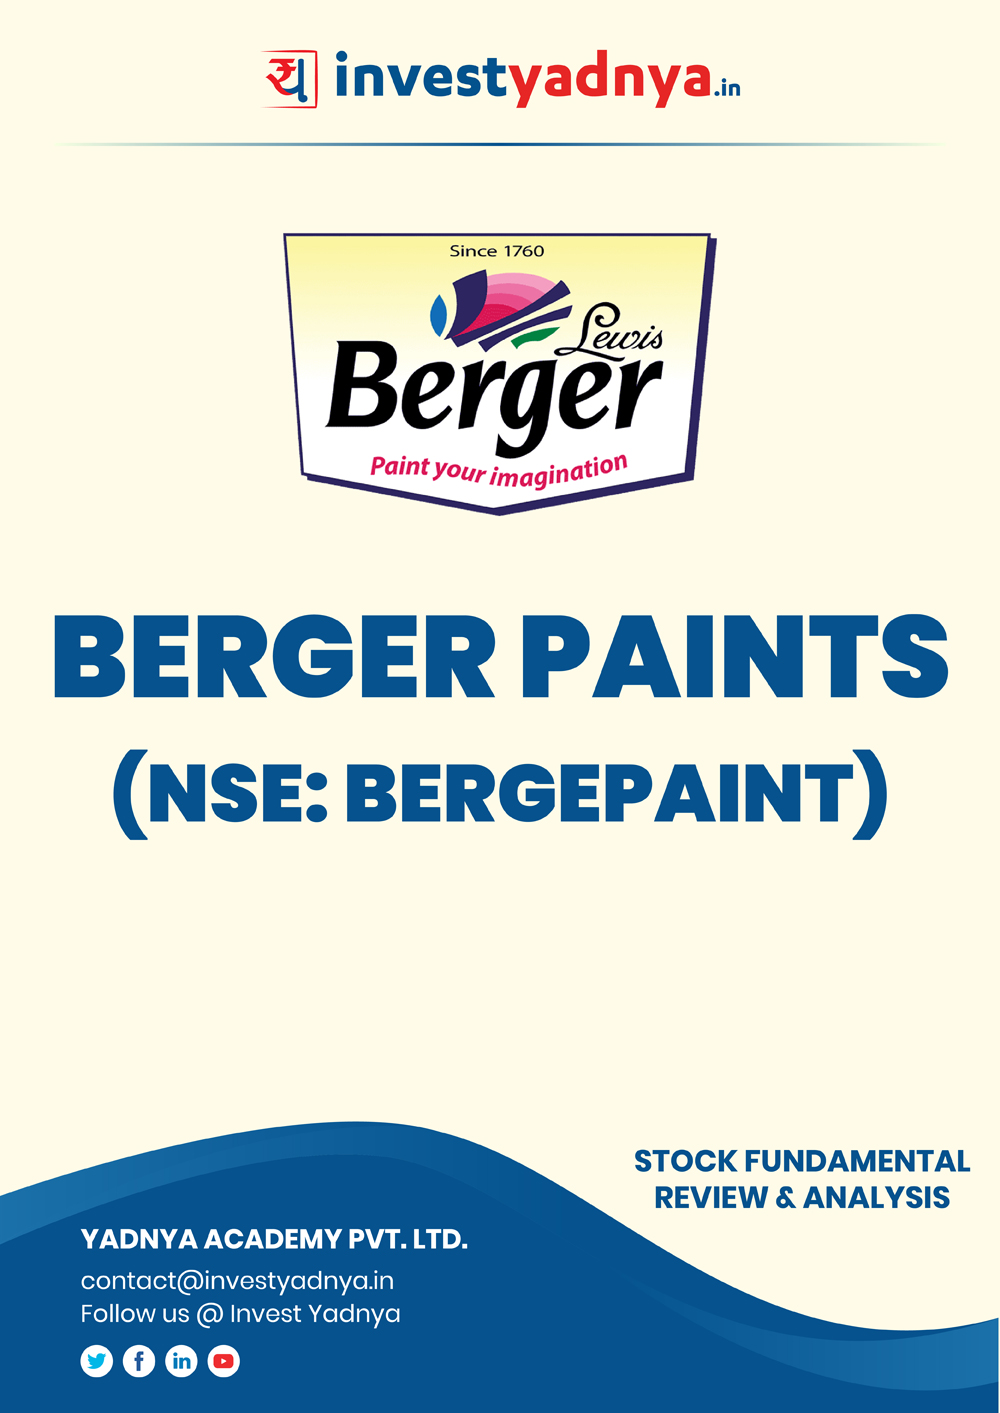 This e-book contains in-depth fundamental analysis of Berger Paints India Ltd. considering both Financial and Equity Research Parameters. It reviews the company, industry shareholding pattern, financials, governance and annual performance. ✔ Detailed Research ✔ Quality Reports